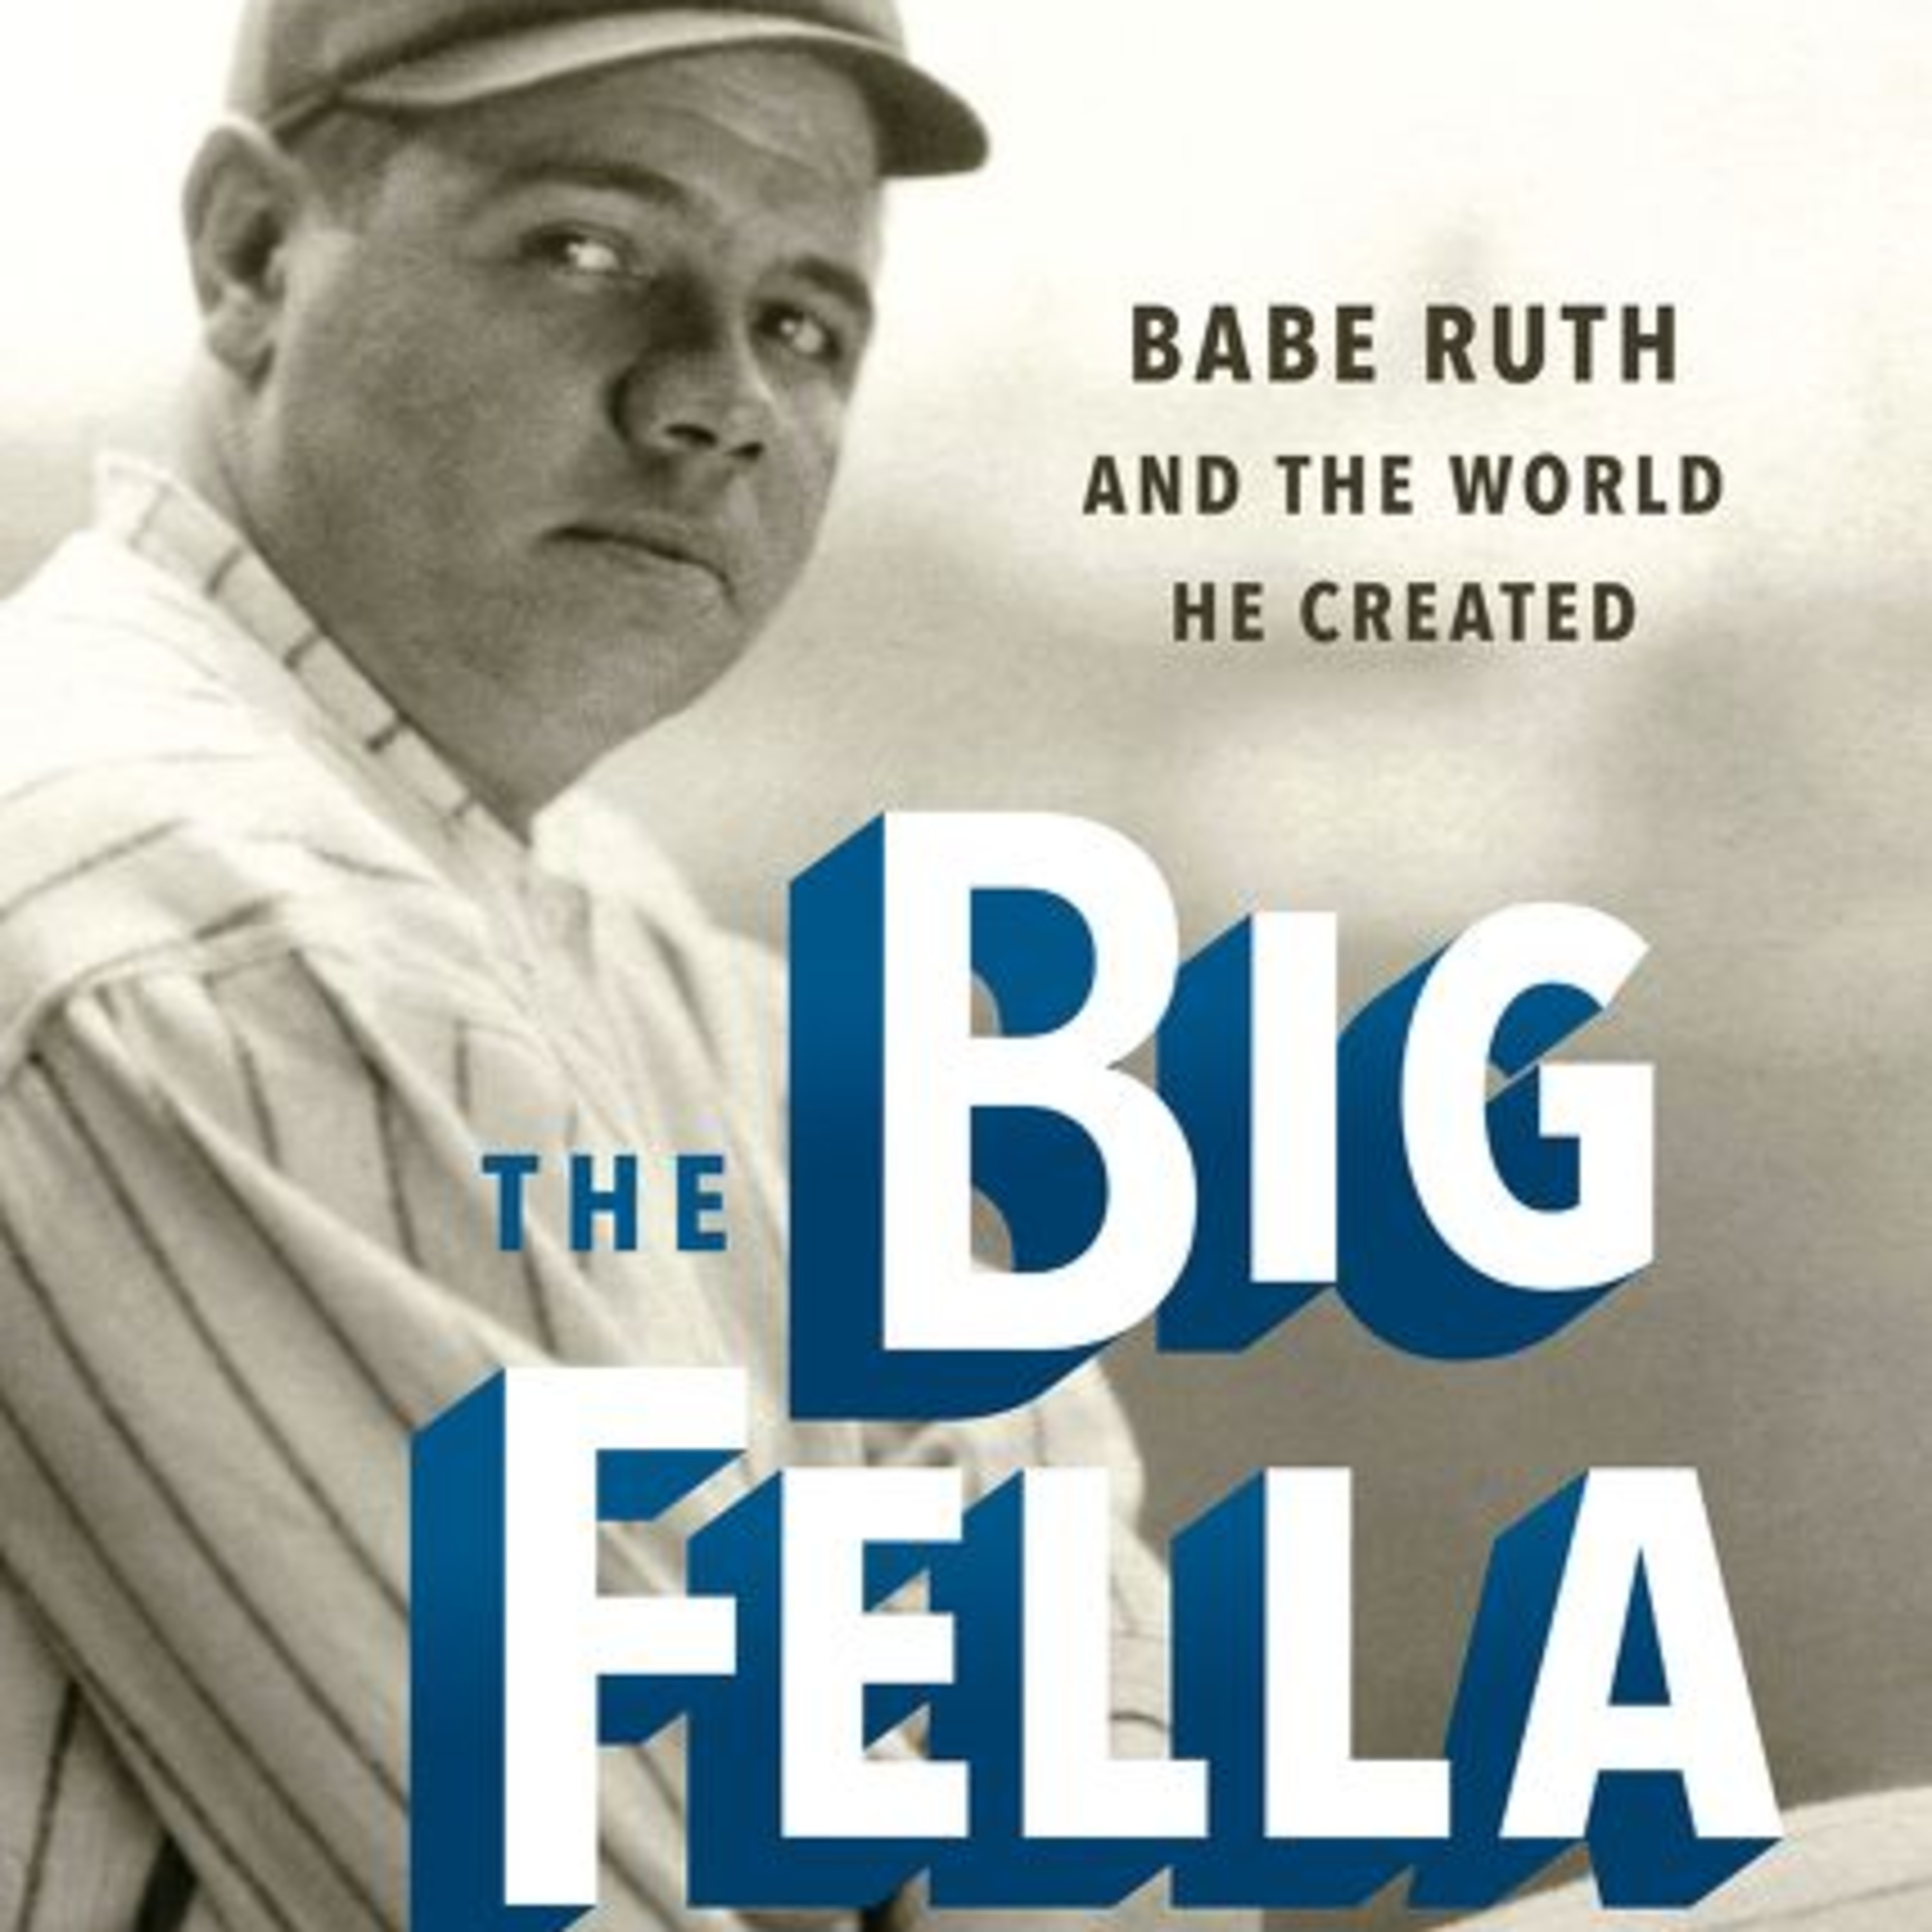 The Big Fella Babe Ruth and the World He Created by Jane Leavy